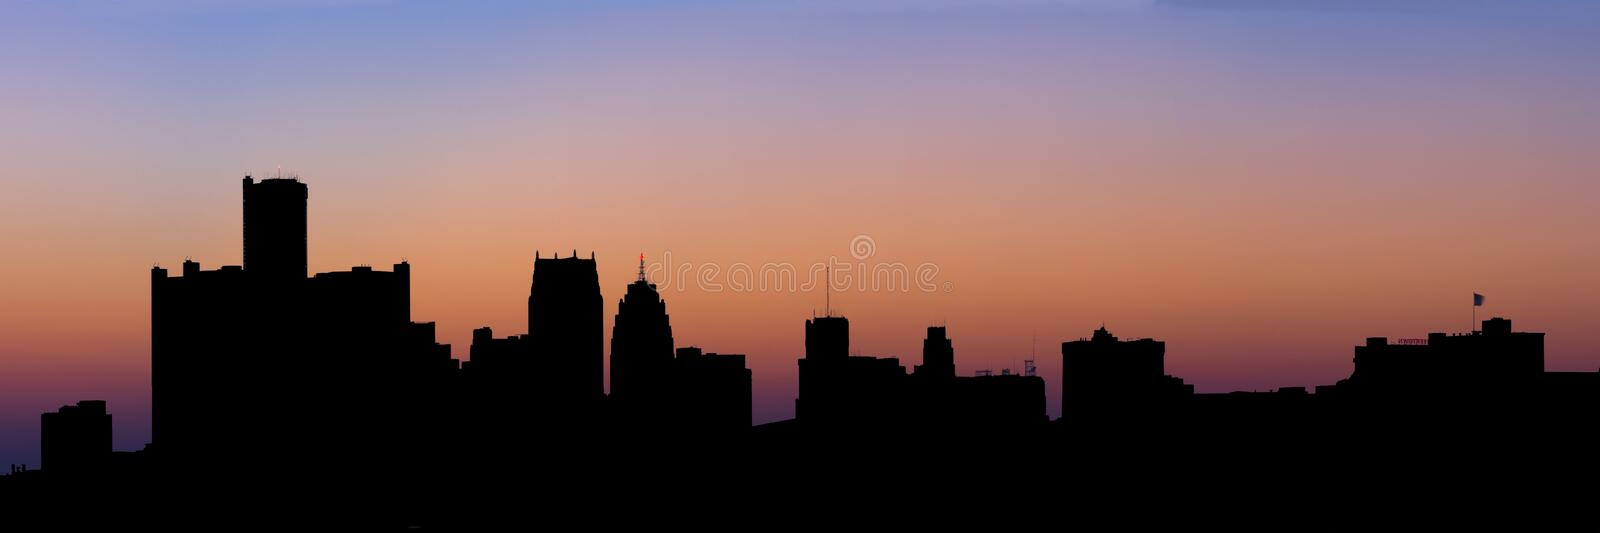 Panoramic Silhouette of the Detroit Skyline stock photography